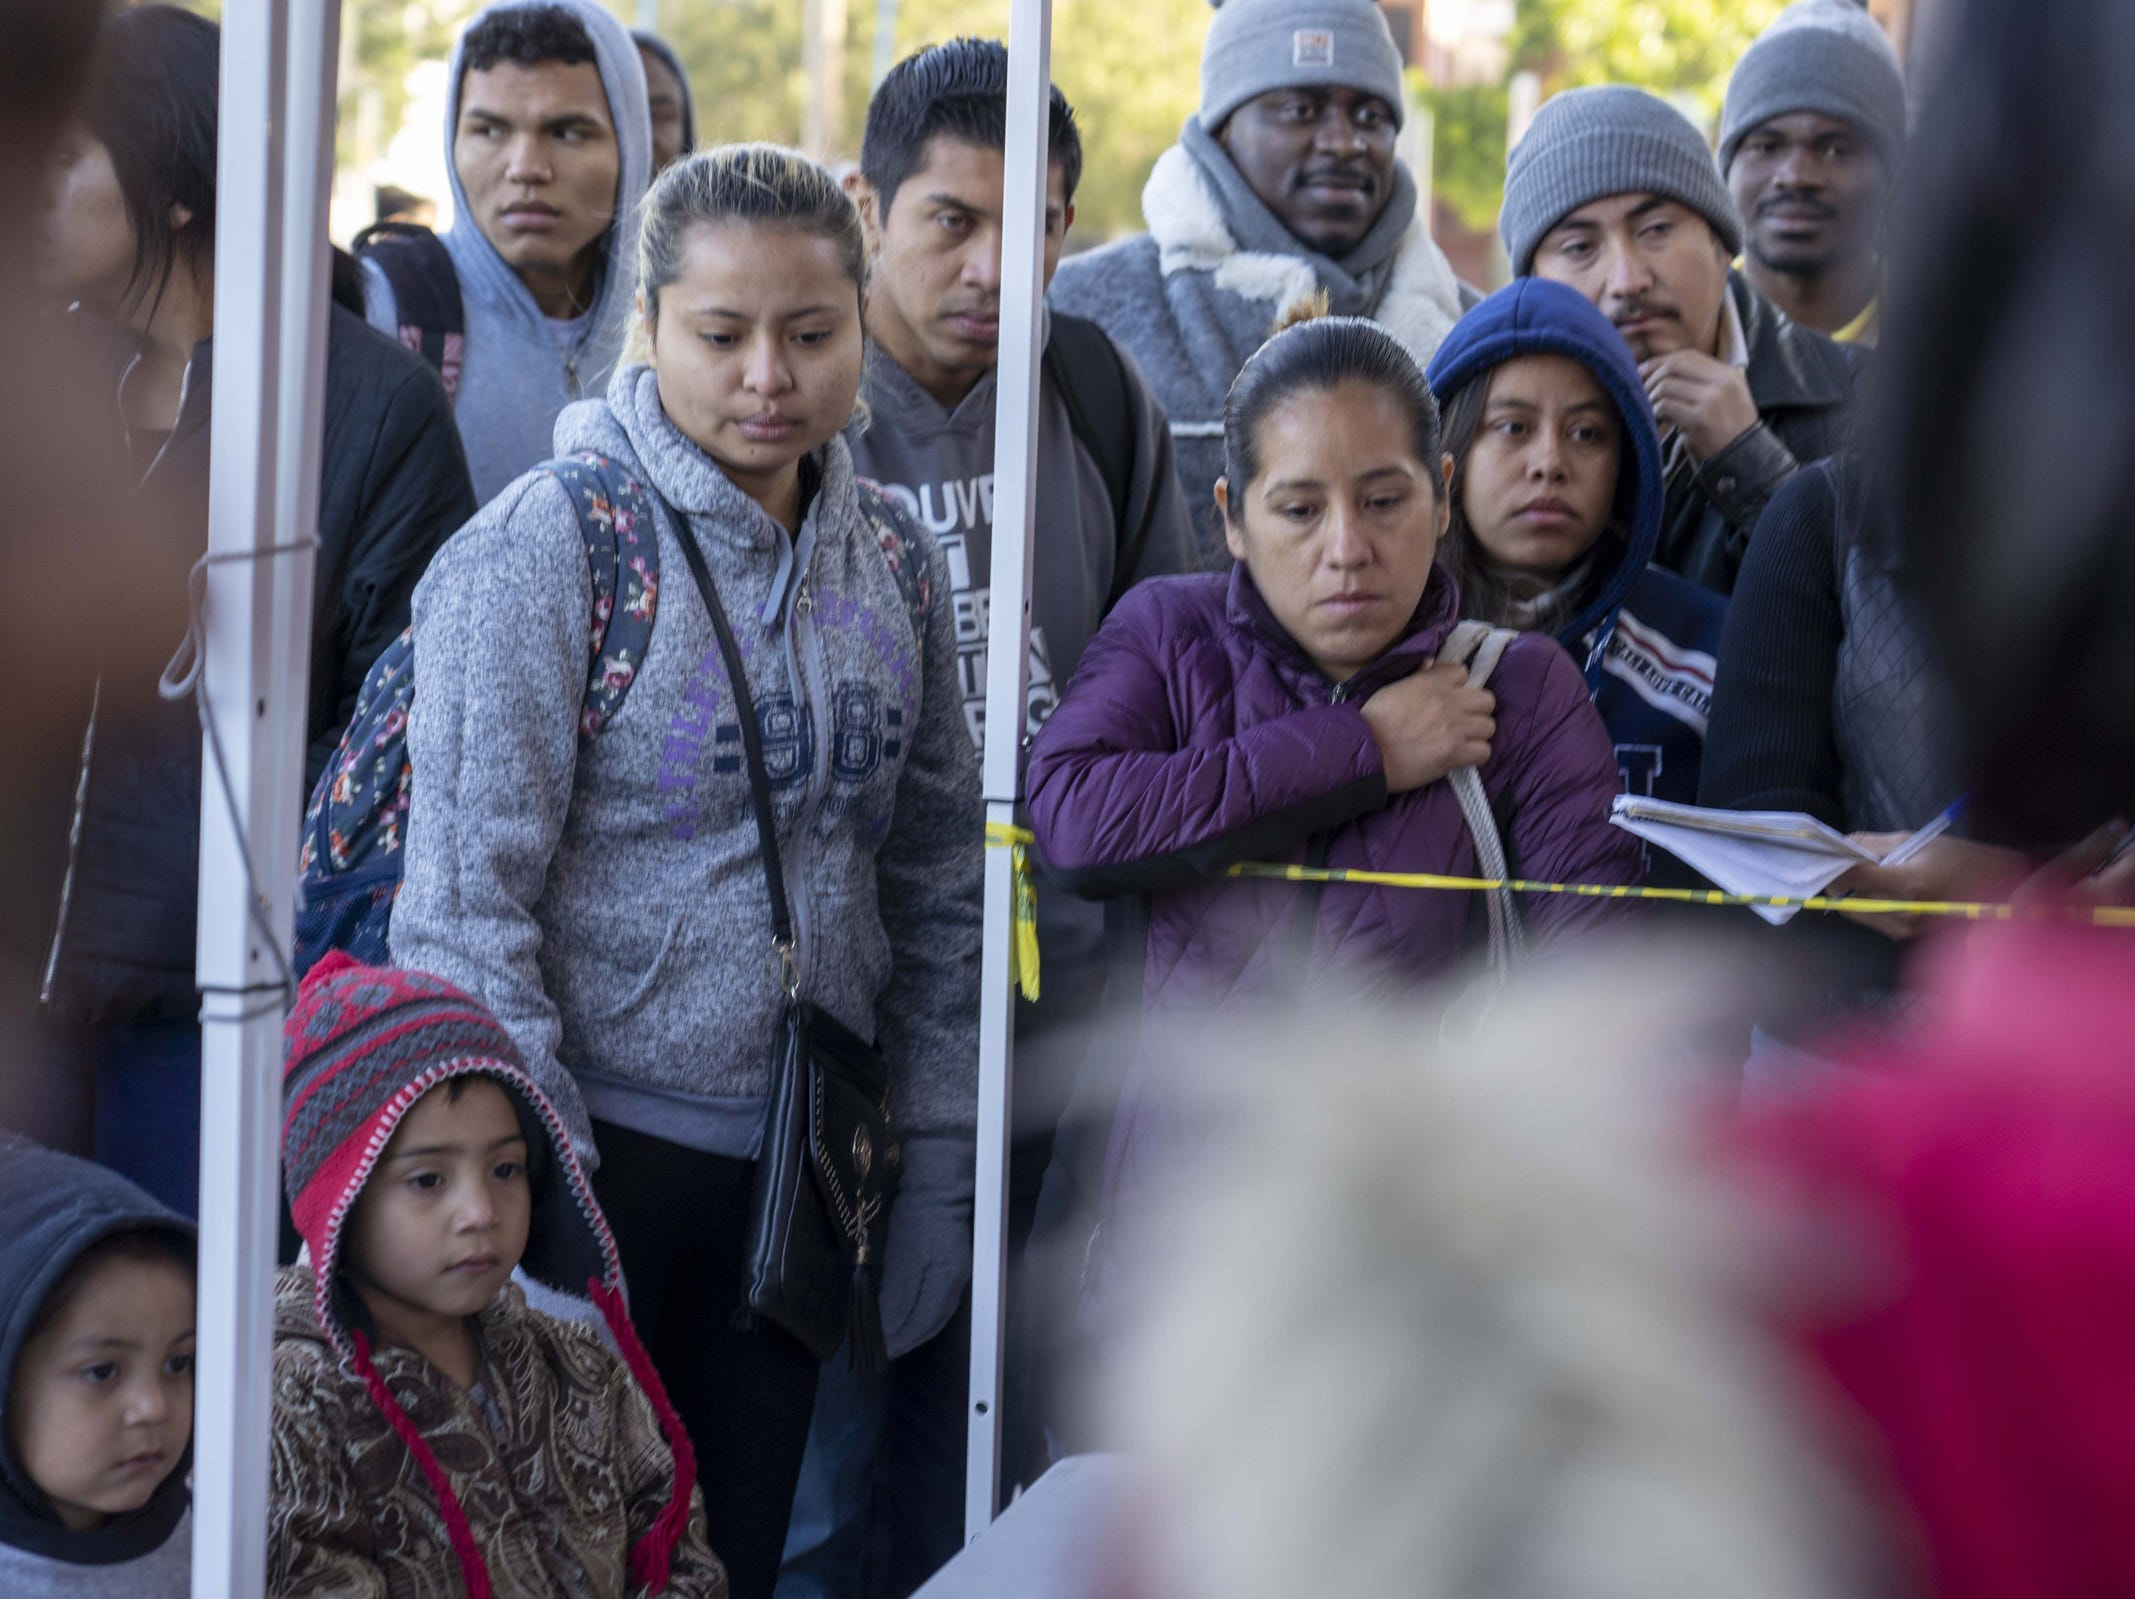 Asylum seekers from Central America and Mexico in line, February 2019, in Tijuana, Mexico, as they wait for their numbers to be called to meet with U.S. immigration officials.